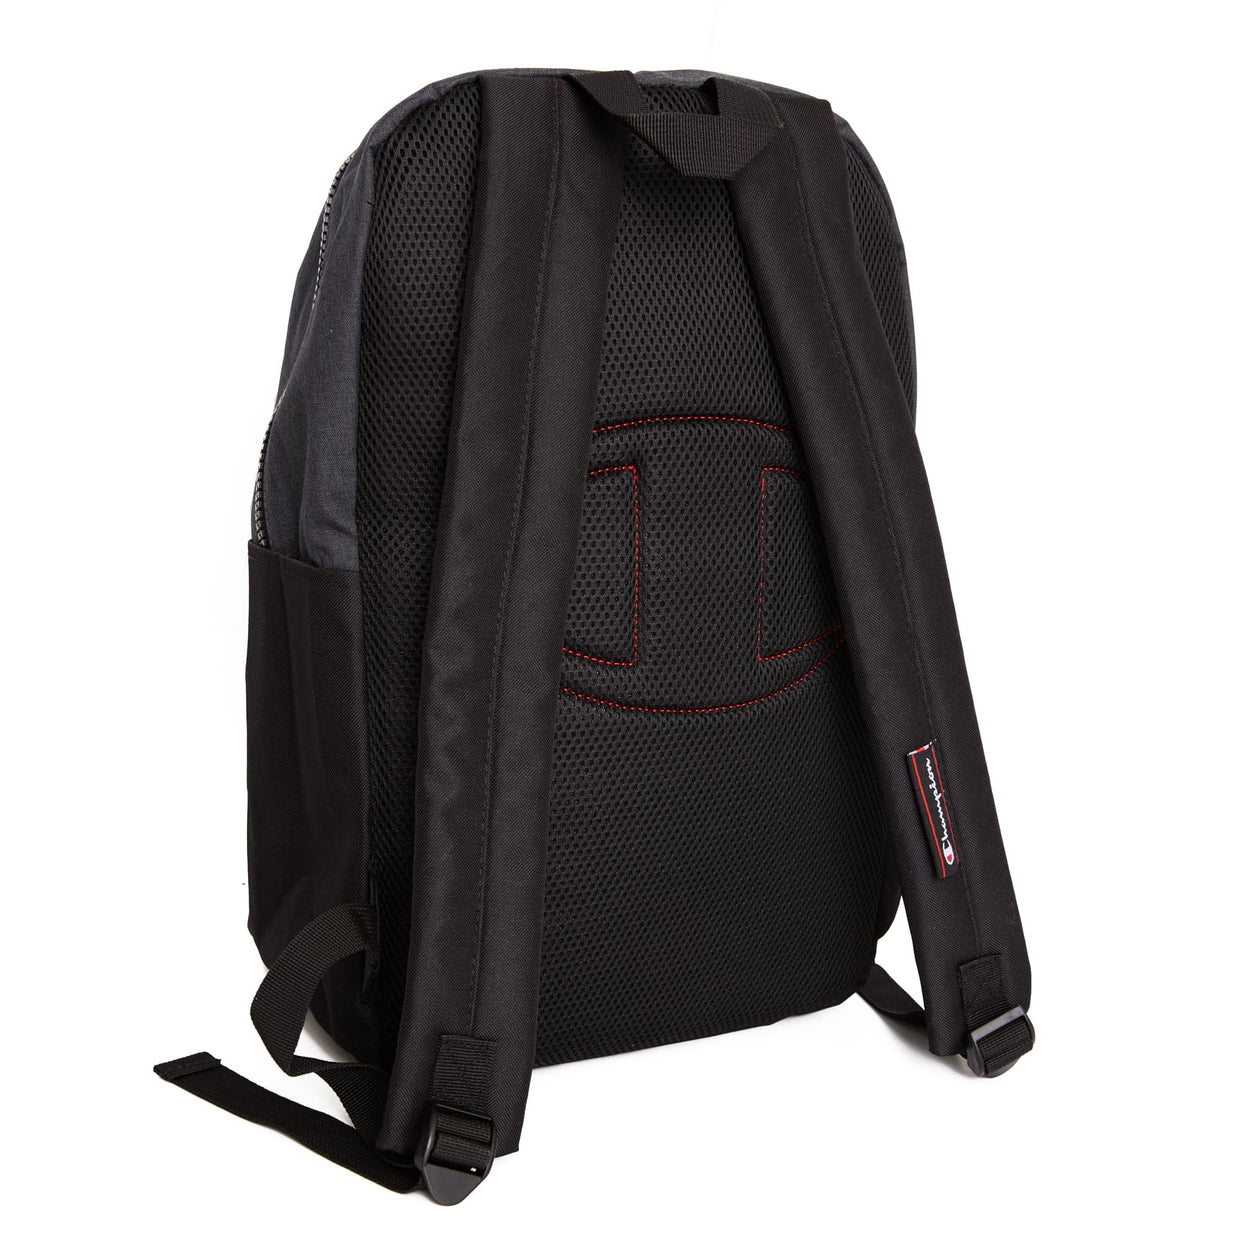 Typical Spectrum Reflective Champion Backpack